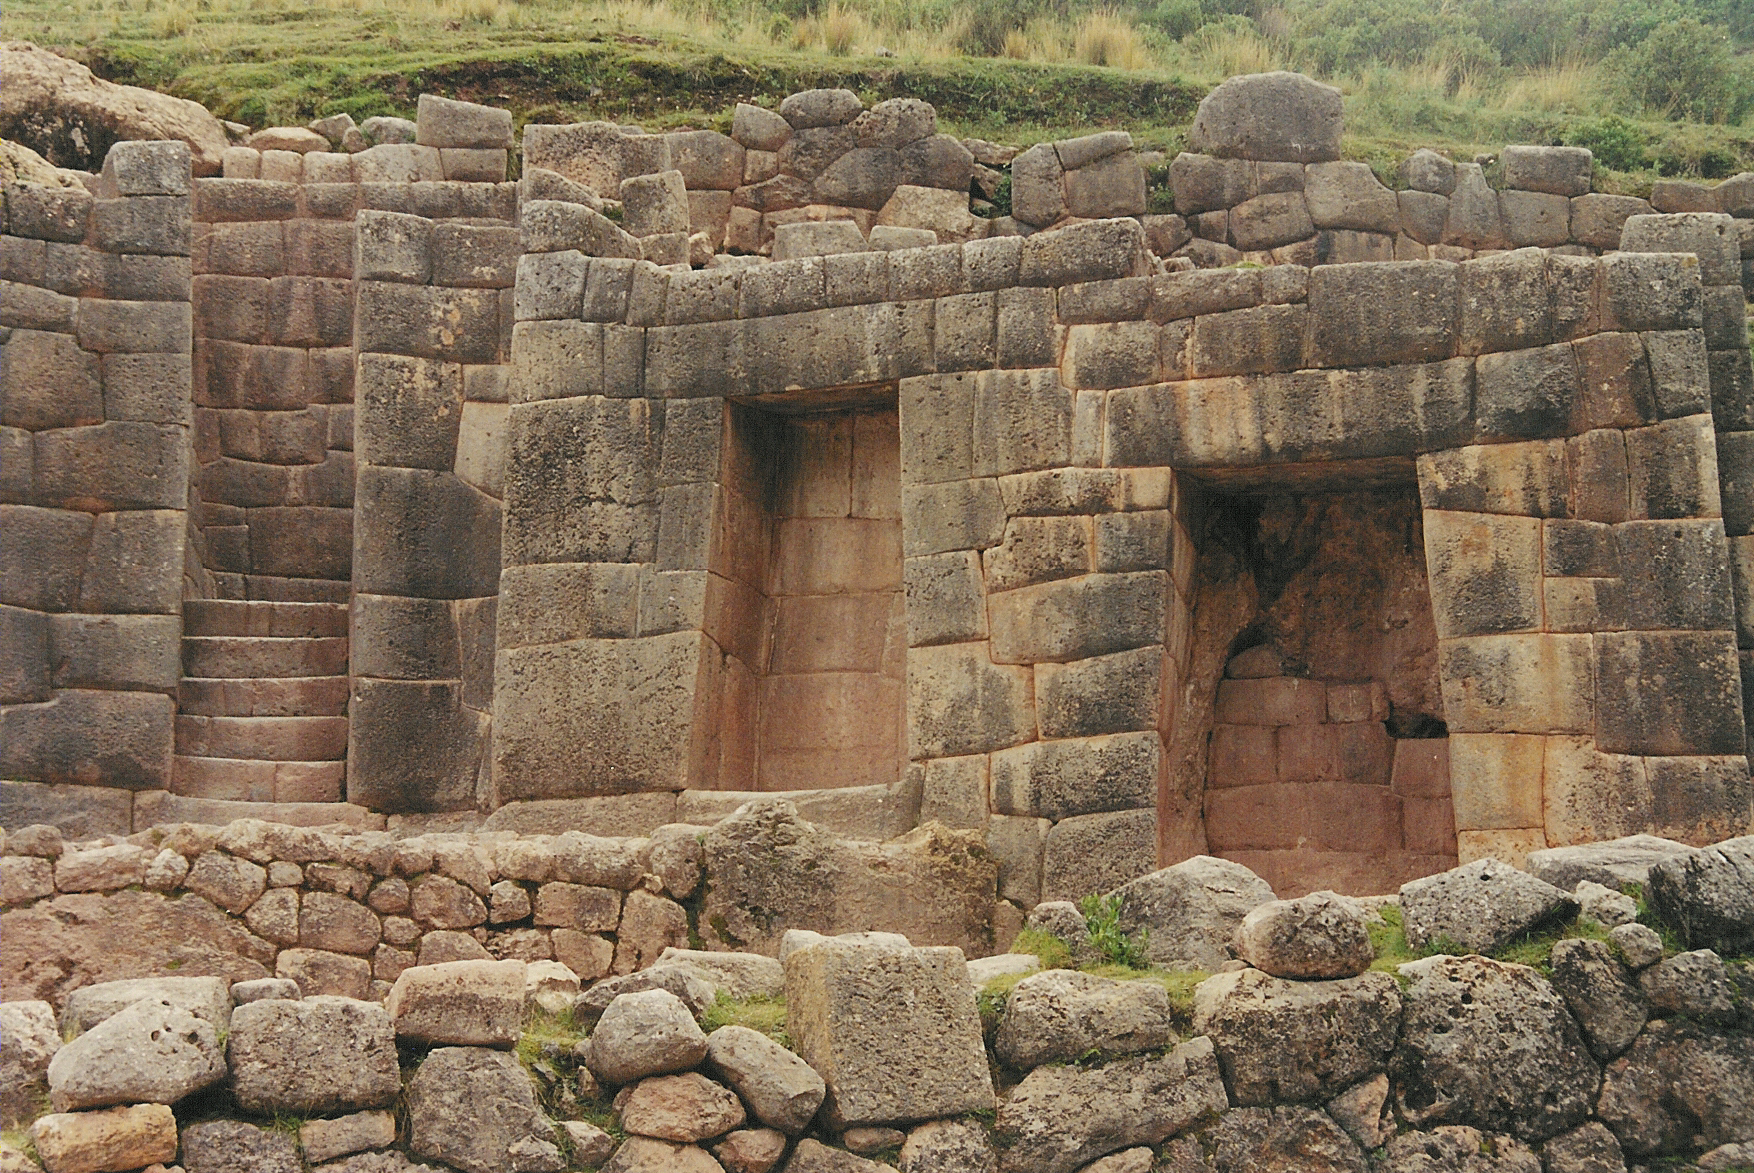 Tambo Machay Archaeological Site Wallpng